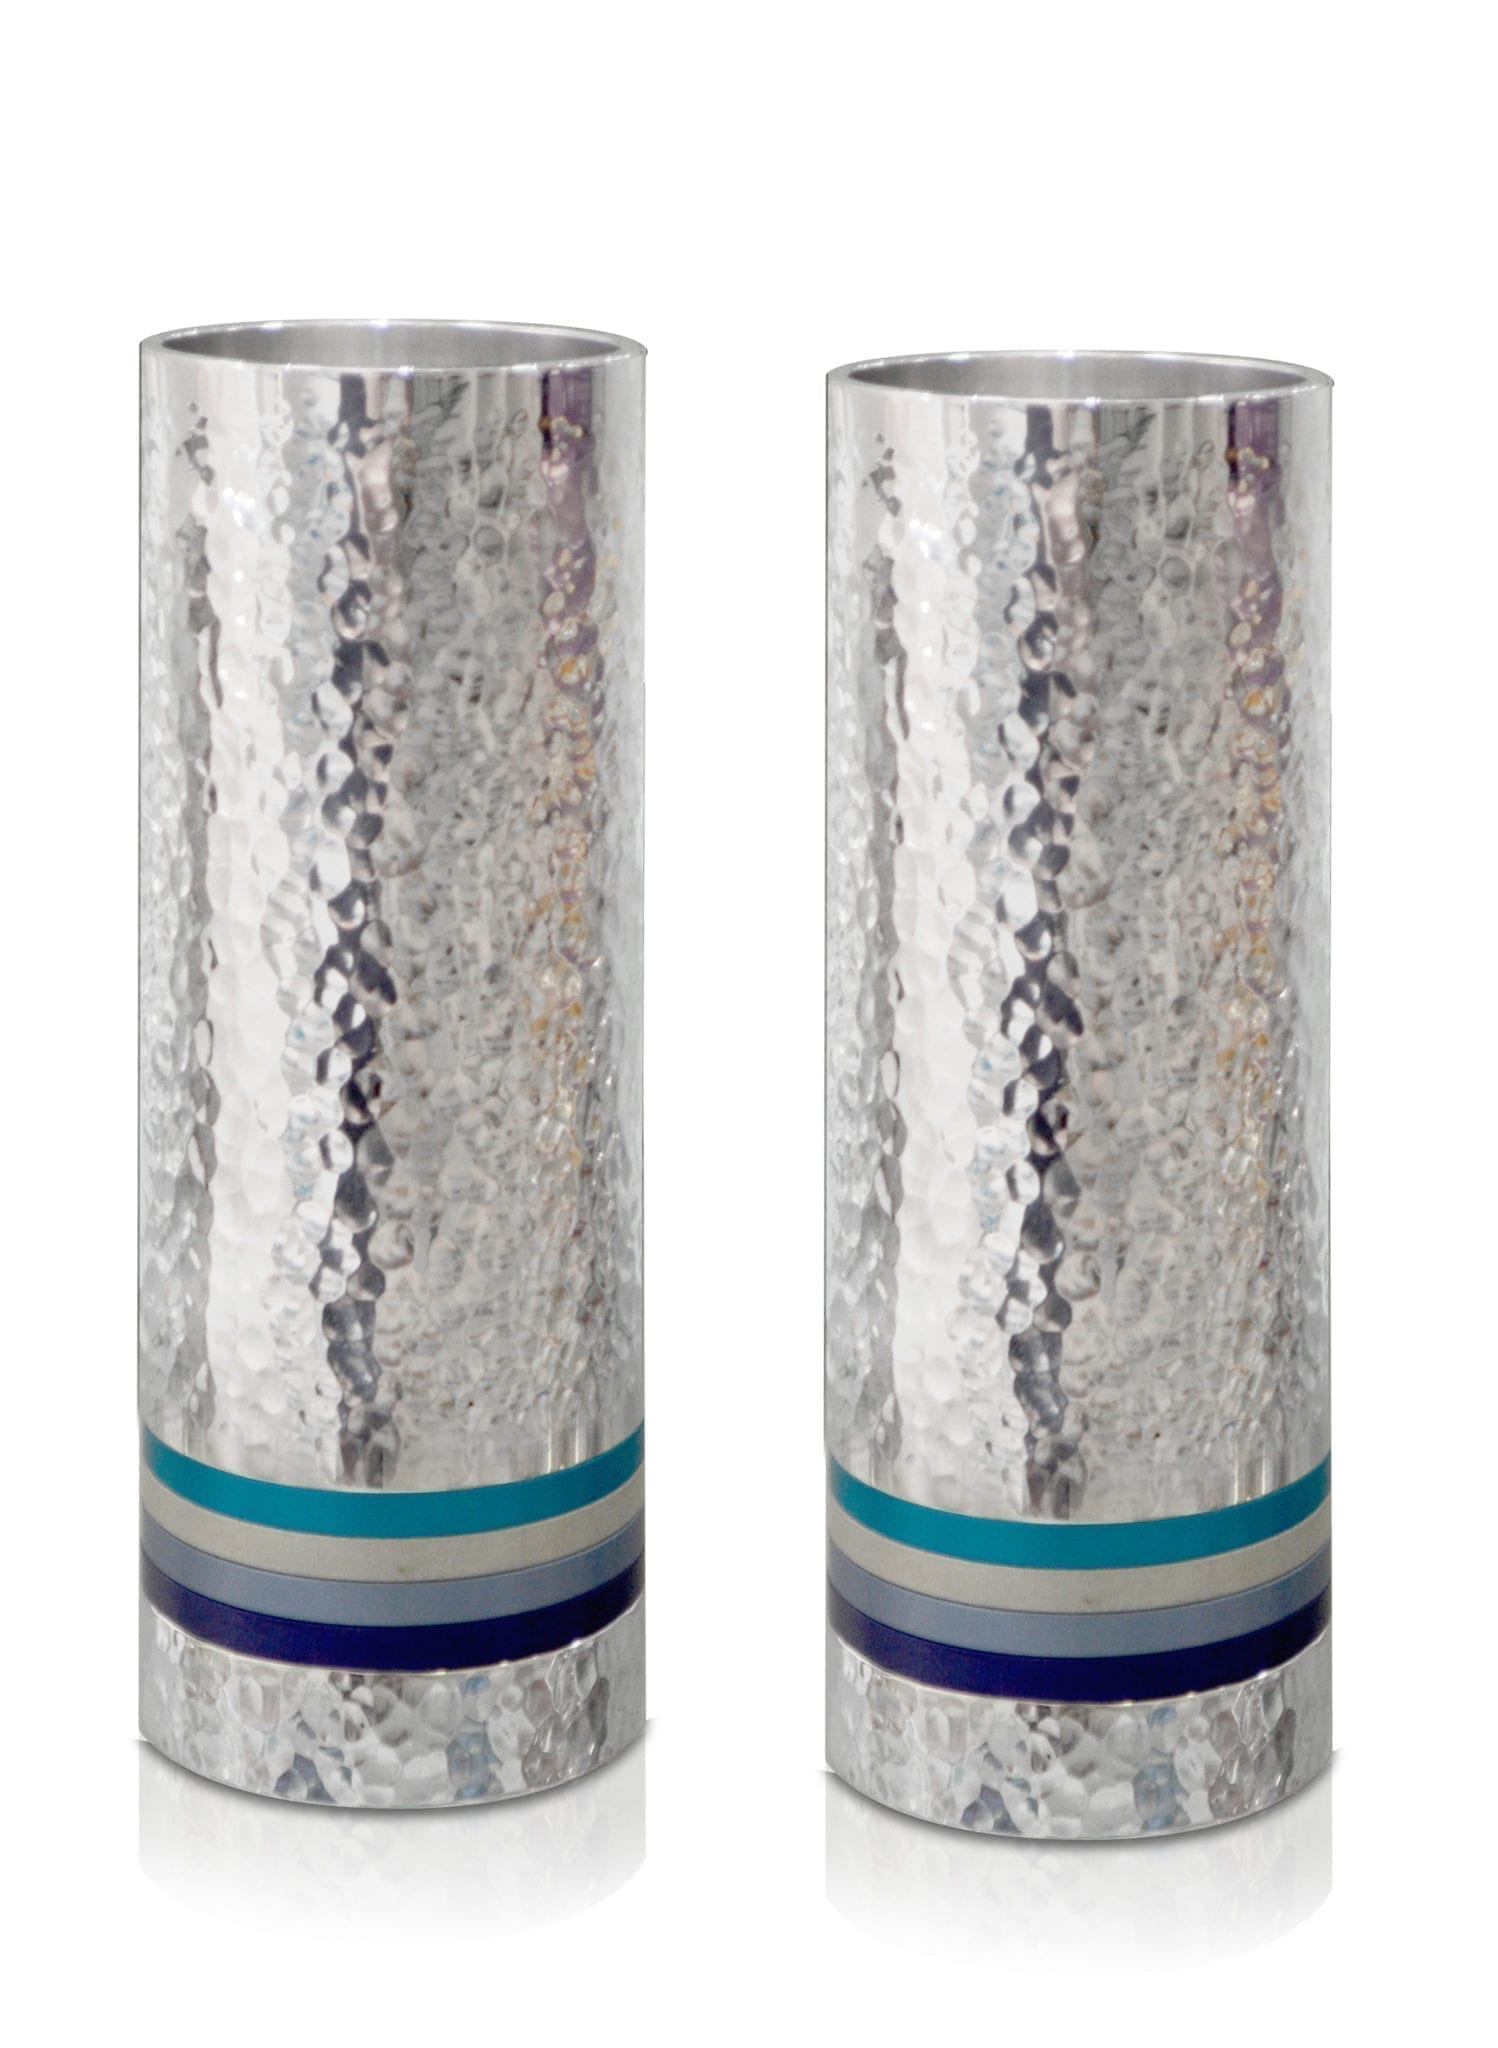 Medium, hammered silver cylindrical candlesticks with colorful rings, anodized aluminum Judaica & home decor made in Israel by Nadav Art